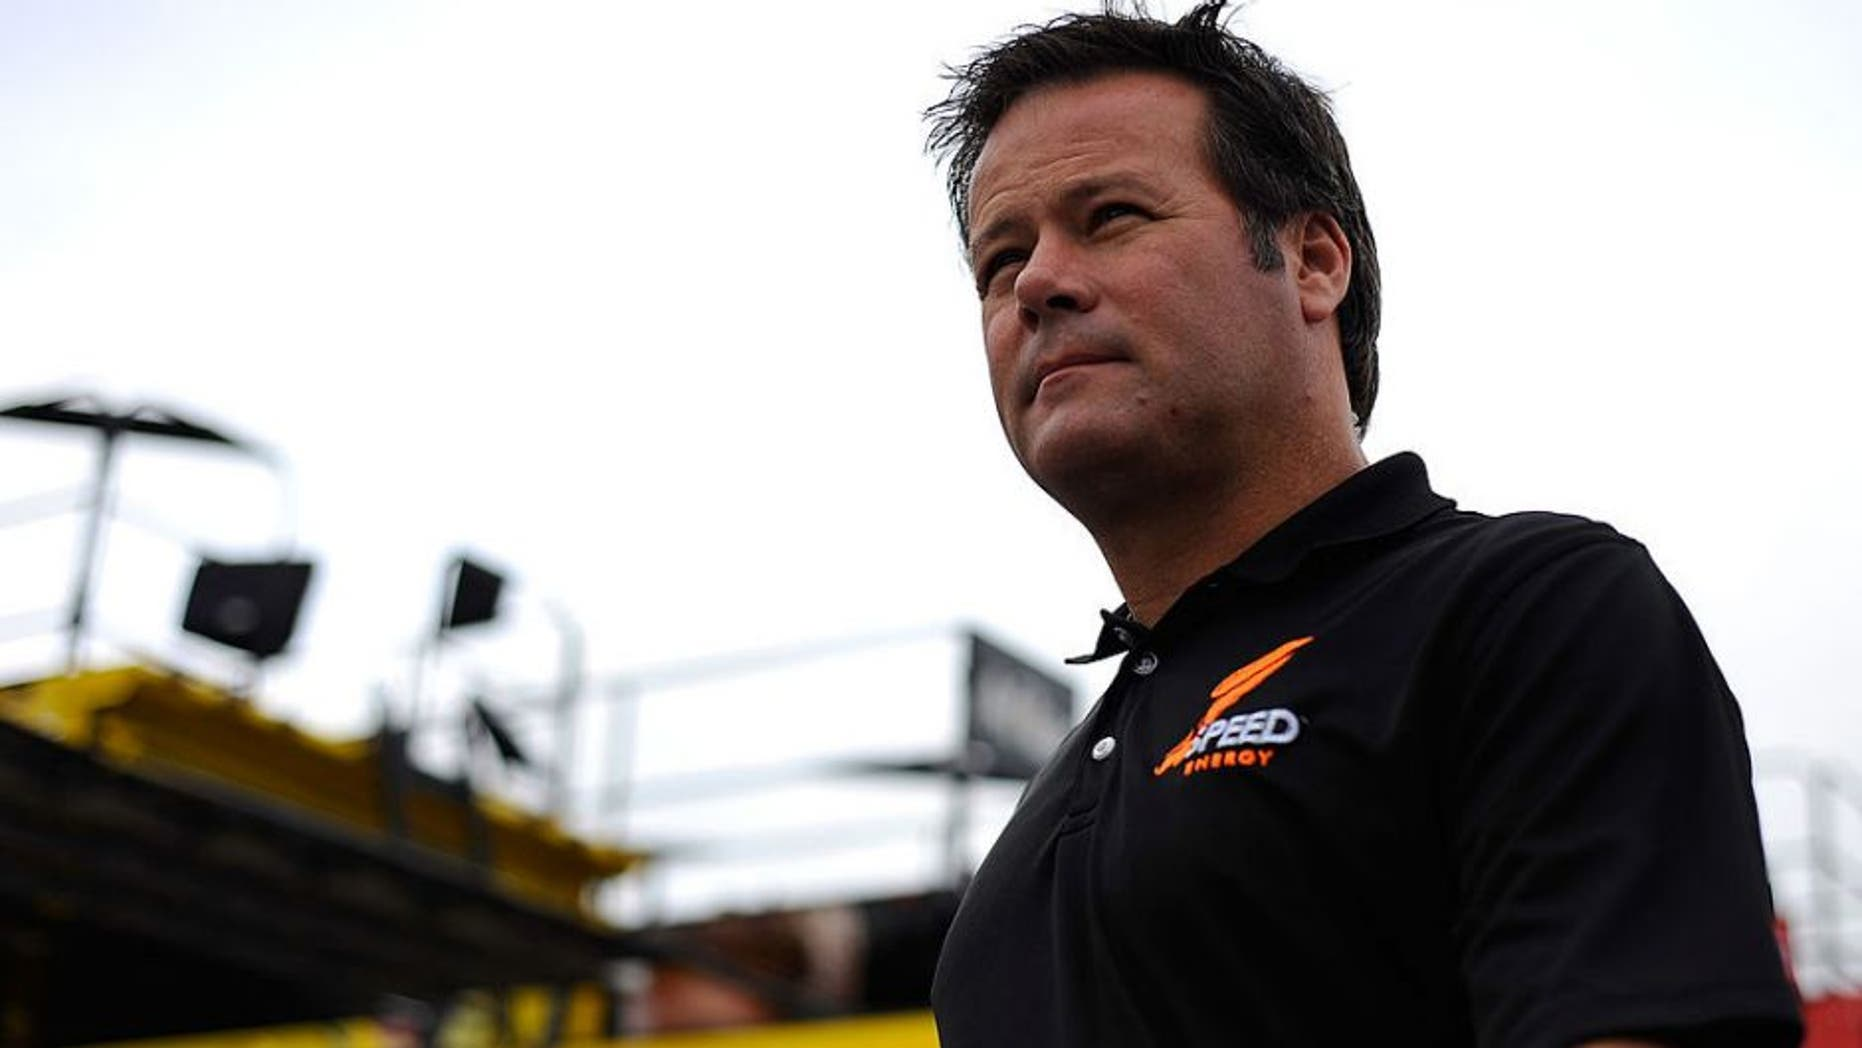 LOUDON, NH - SEPTEMBER 23: Robby Gordon, driver of the #7 Speed Energy Dodge, walks through the garage area during practice for the NASCAR Sprint Cup Series Sylvania 300 at New Hampshire Motor Speedway on September 23, 2011 in Loudon, New Hampshire. (Photo by Jason Smith/Getty Images for NASCAR)